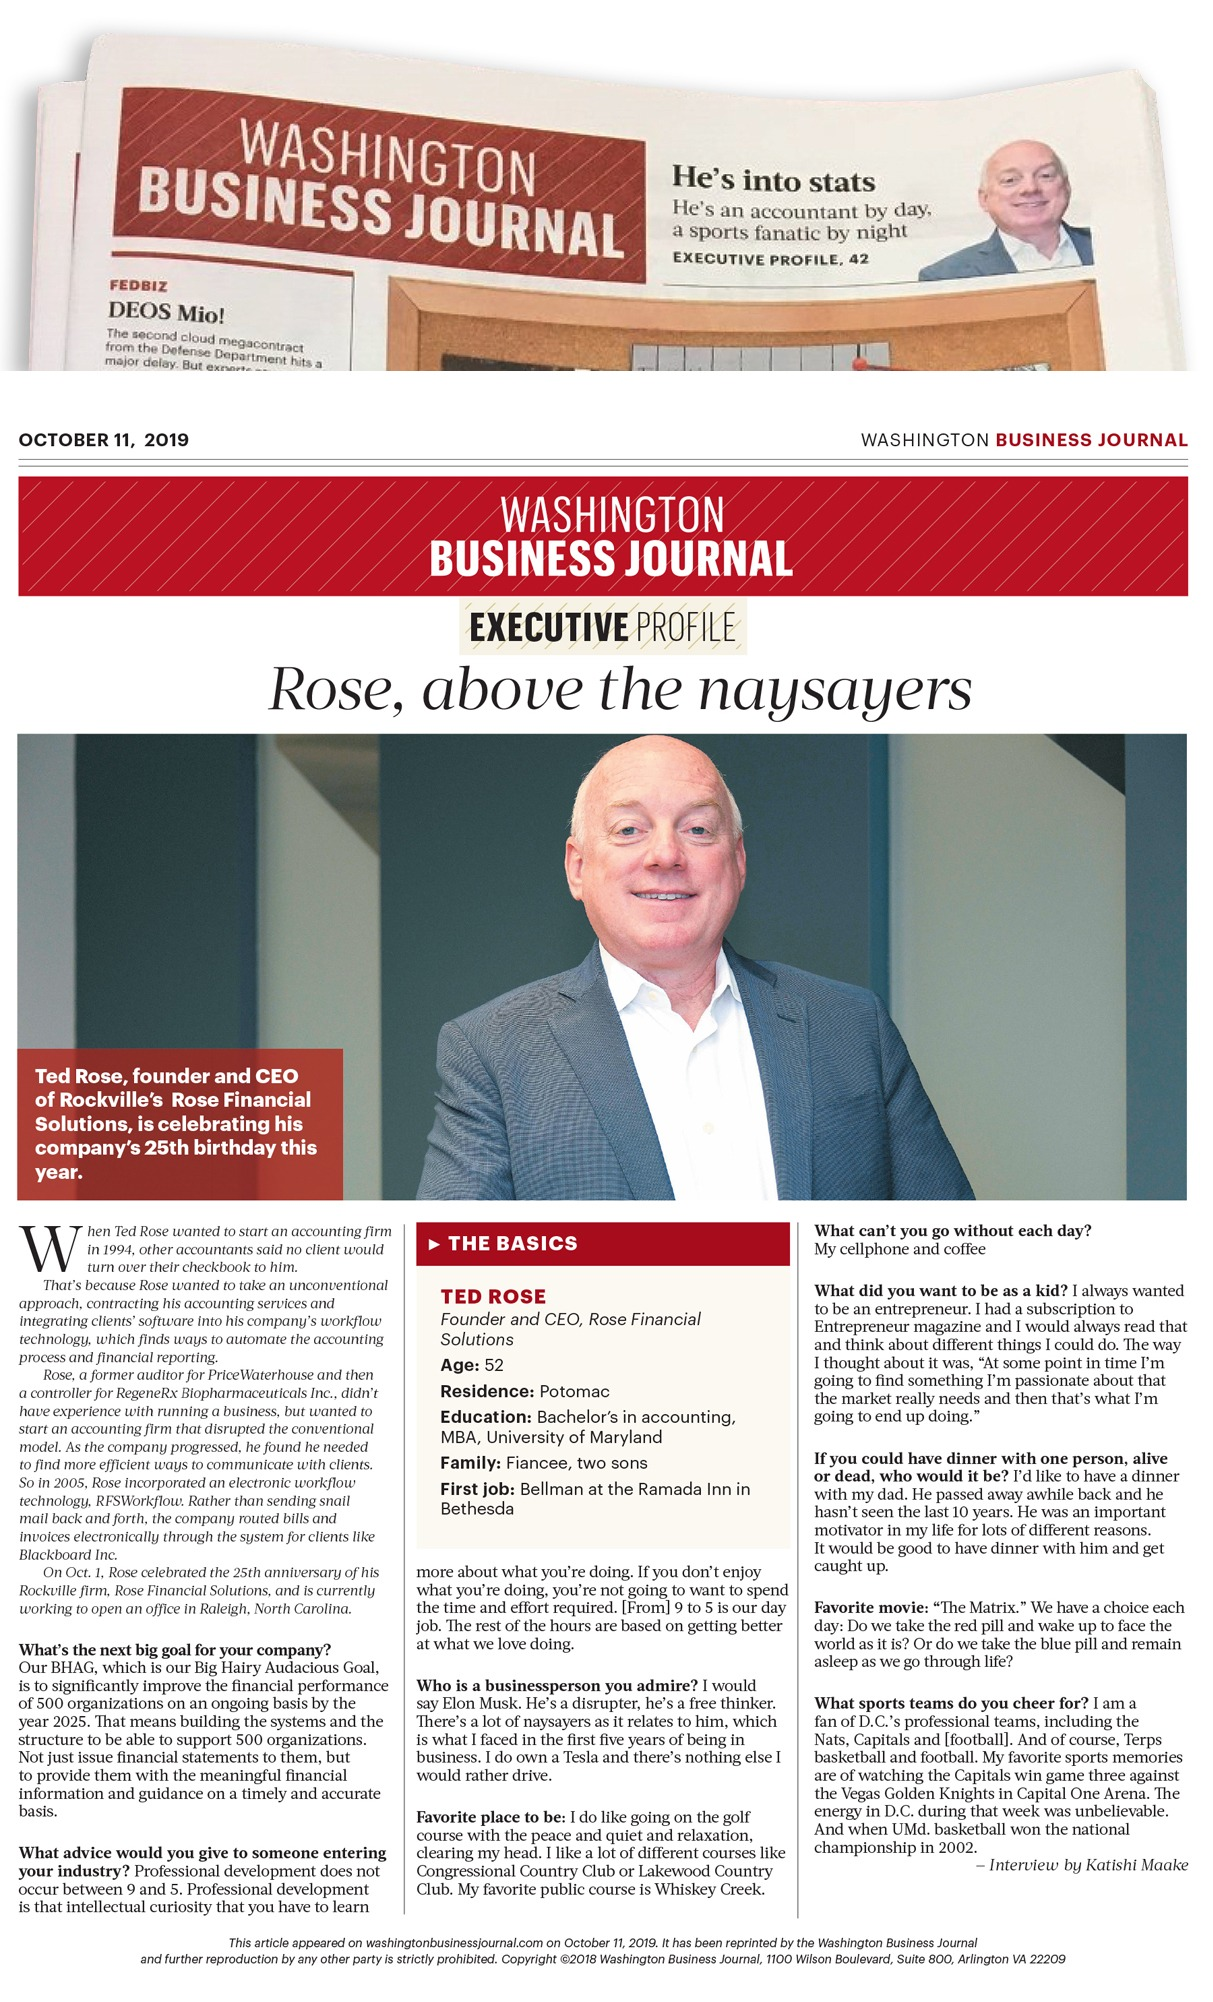 Ted Rose featured in WBJ